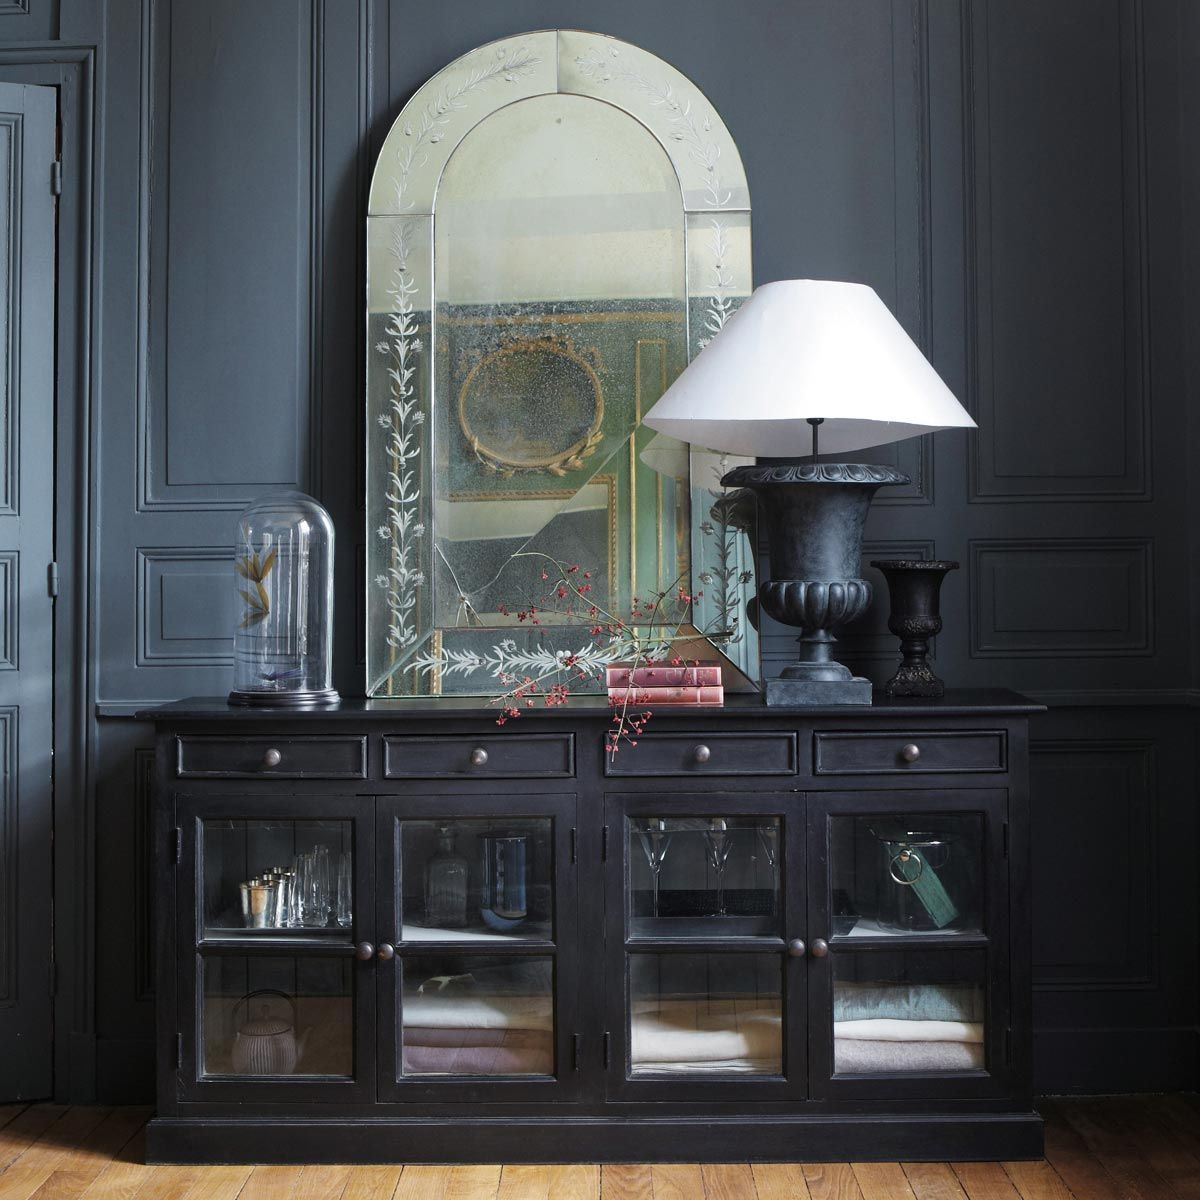 buffet vitr en manguier noir l 170 cm maison du monde le monde et monde. Black Bedroom Furniture Sets. Home Design Ideas